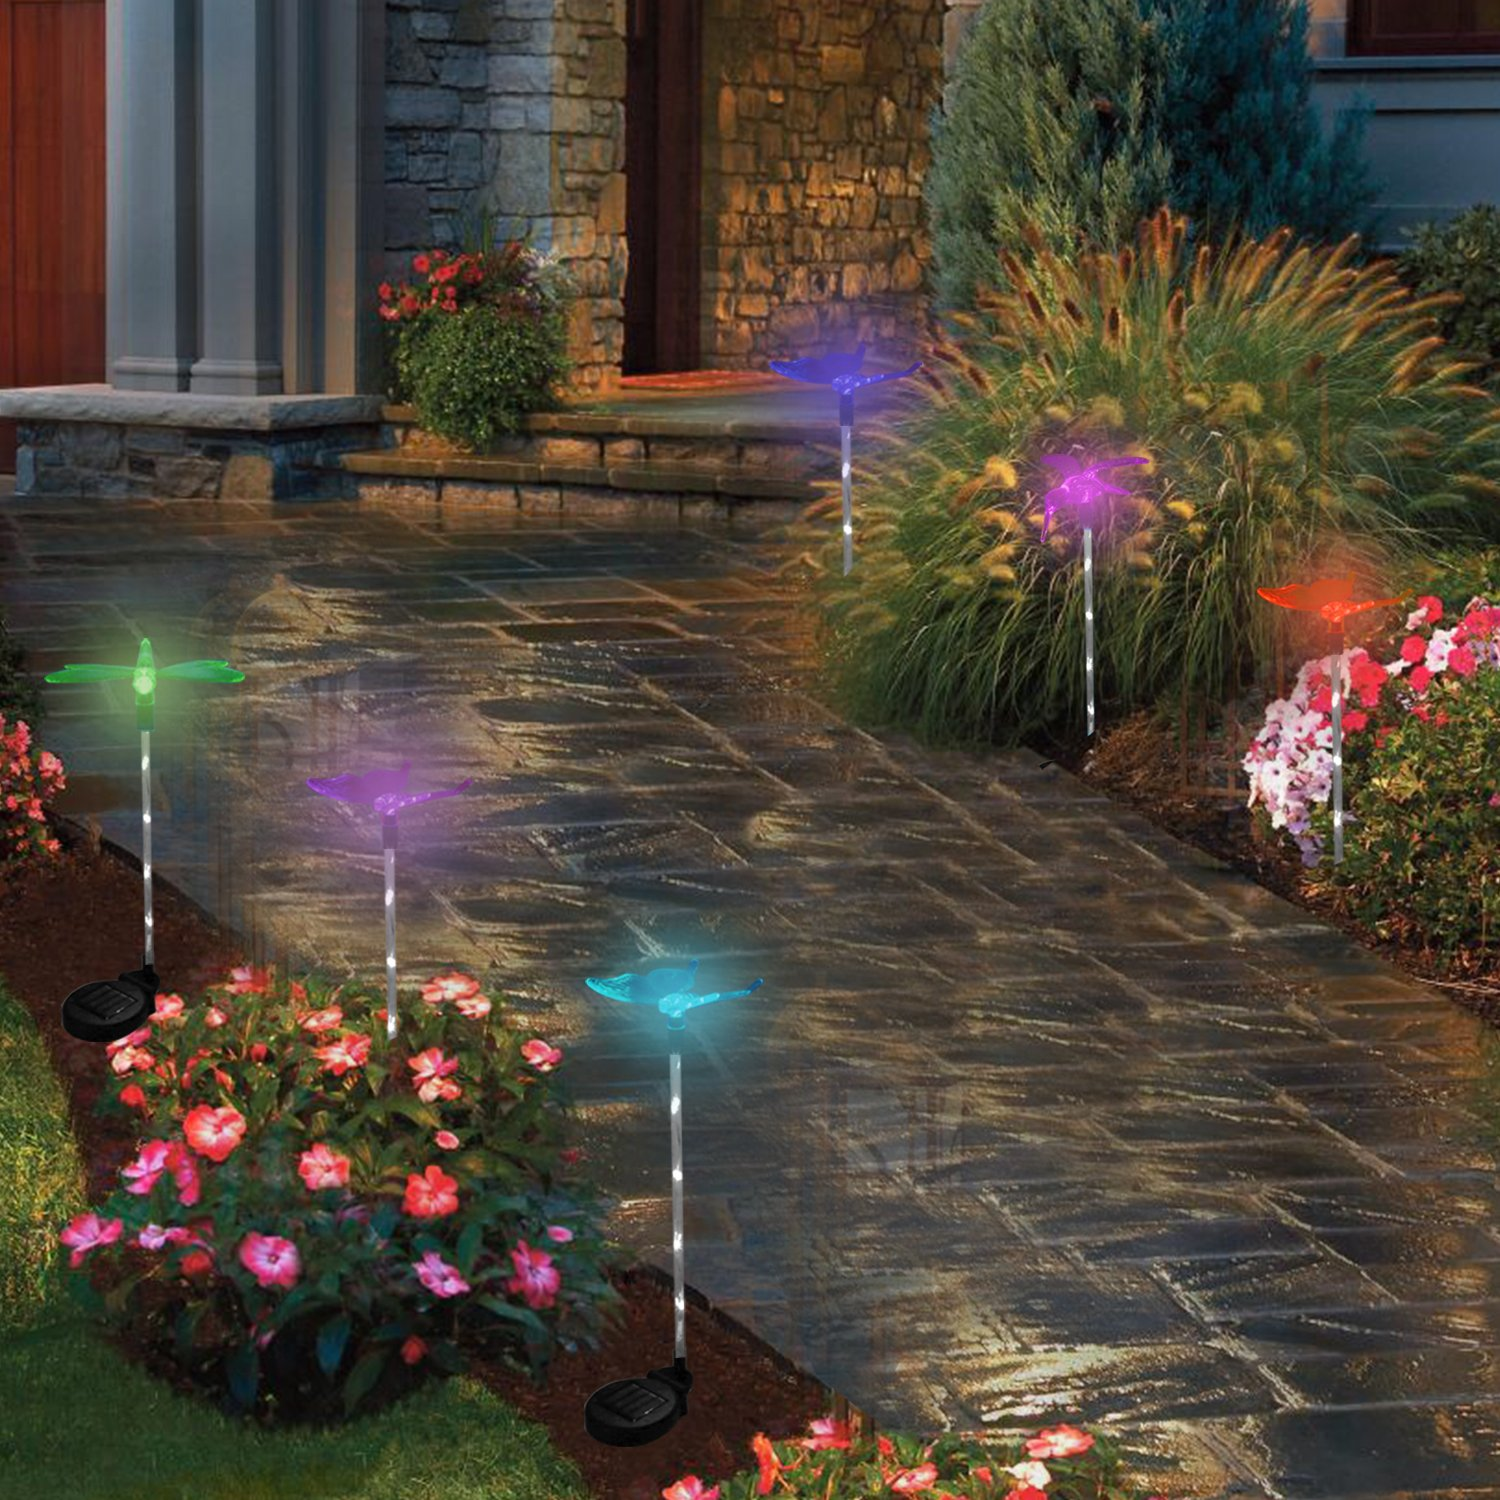 ArtDIY Outdoor Solar Garden Stake Lights - 3 Pack Solar Lights with Butterfly,Hummingbird,Dragonfly, Multi-color Changing LED Outdoor Decorative Solar Stake Lights for Garden, Patio, Backyard